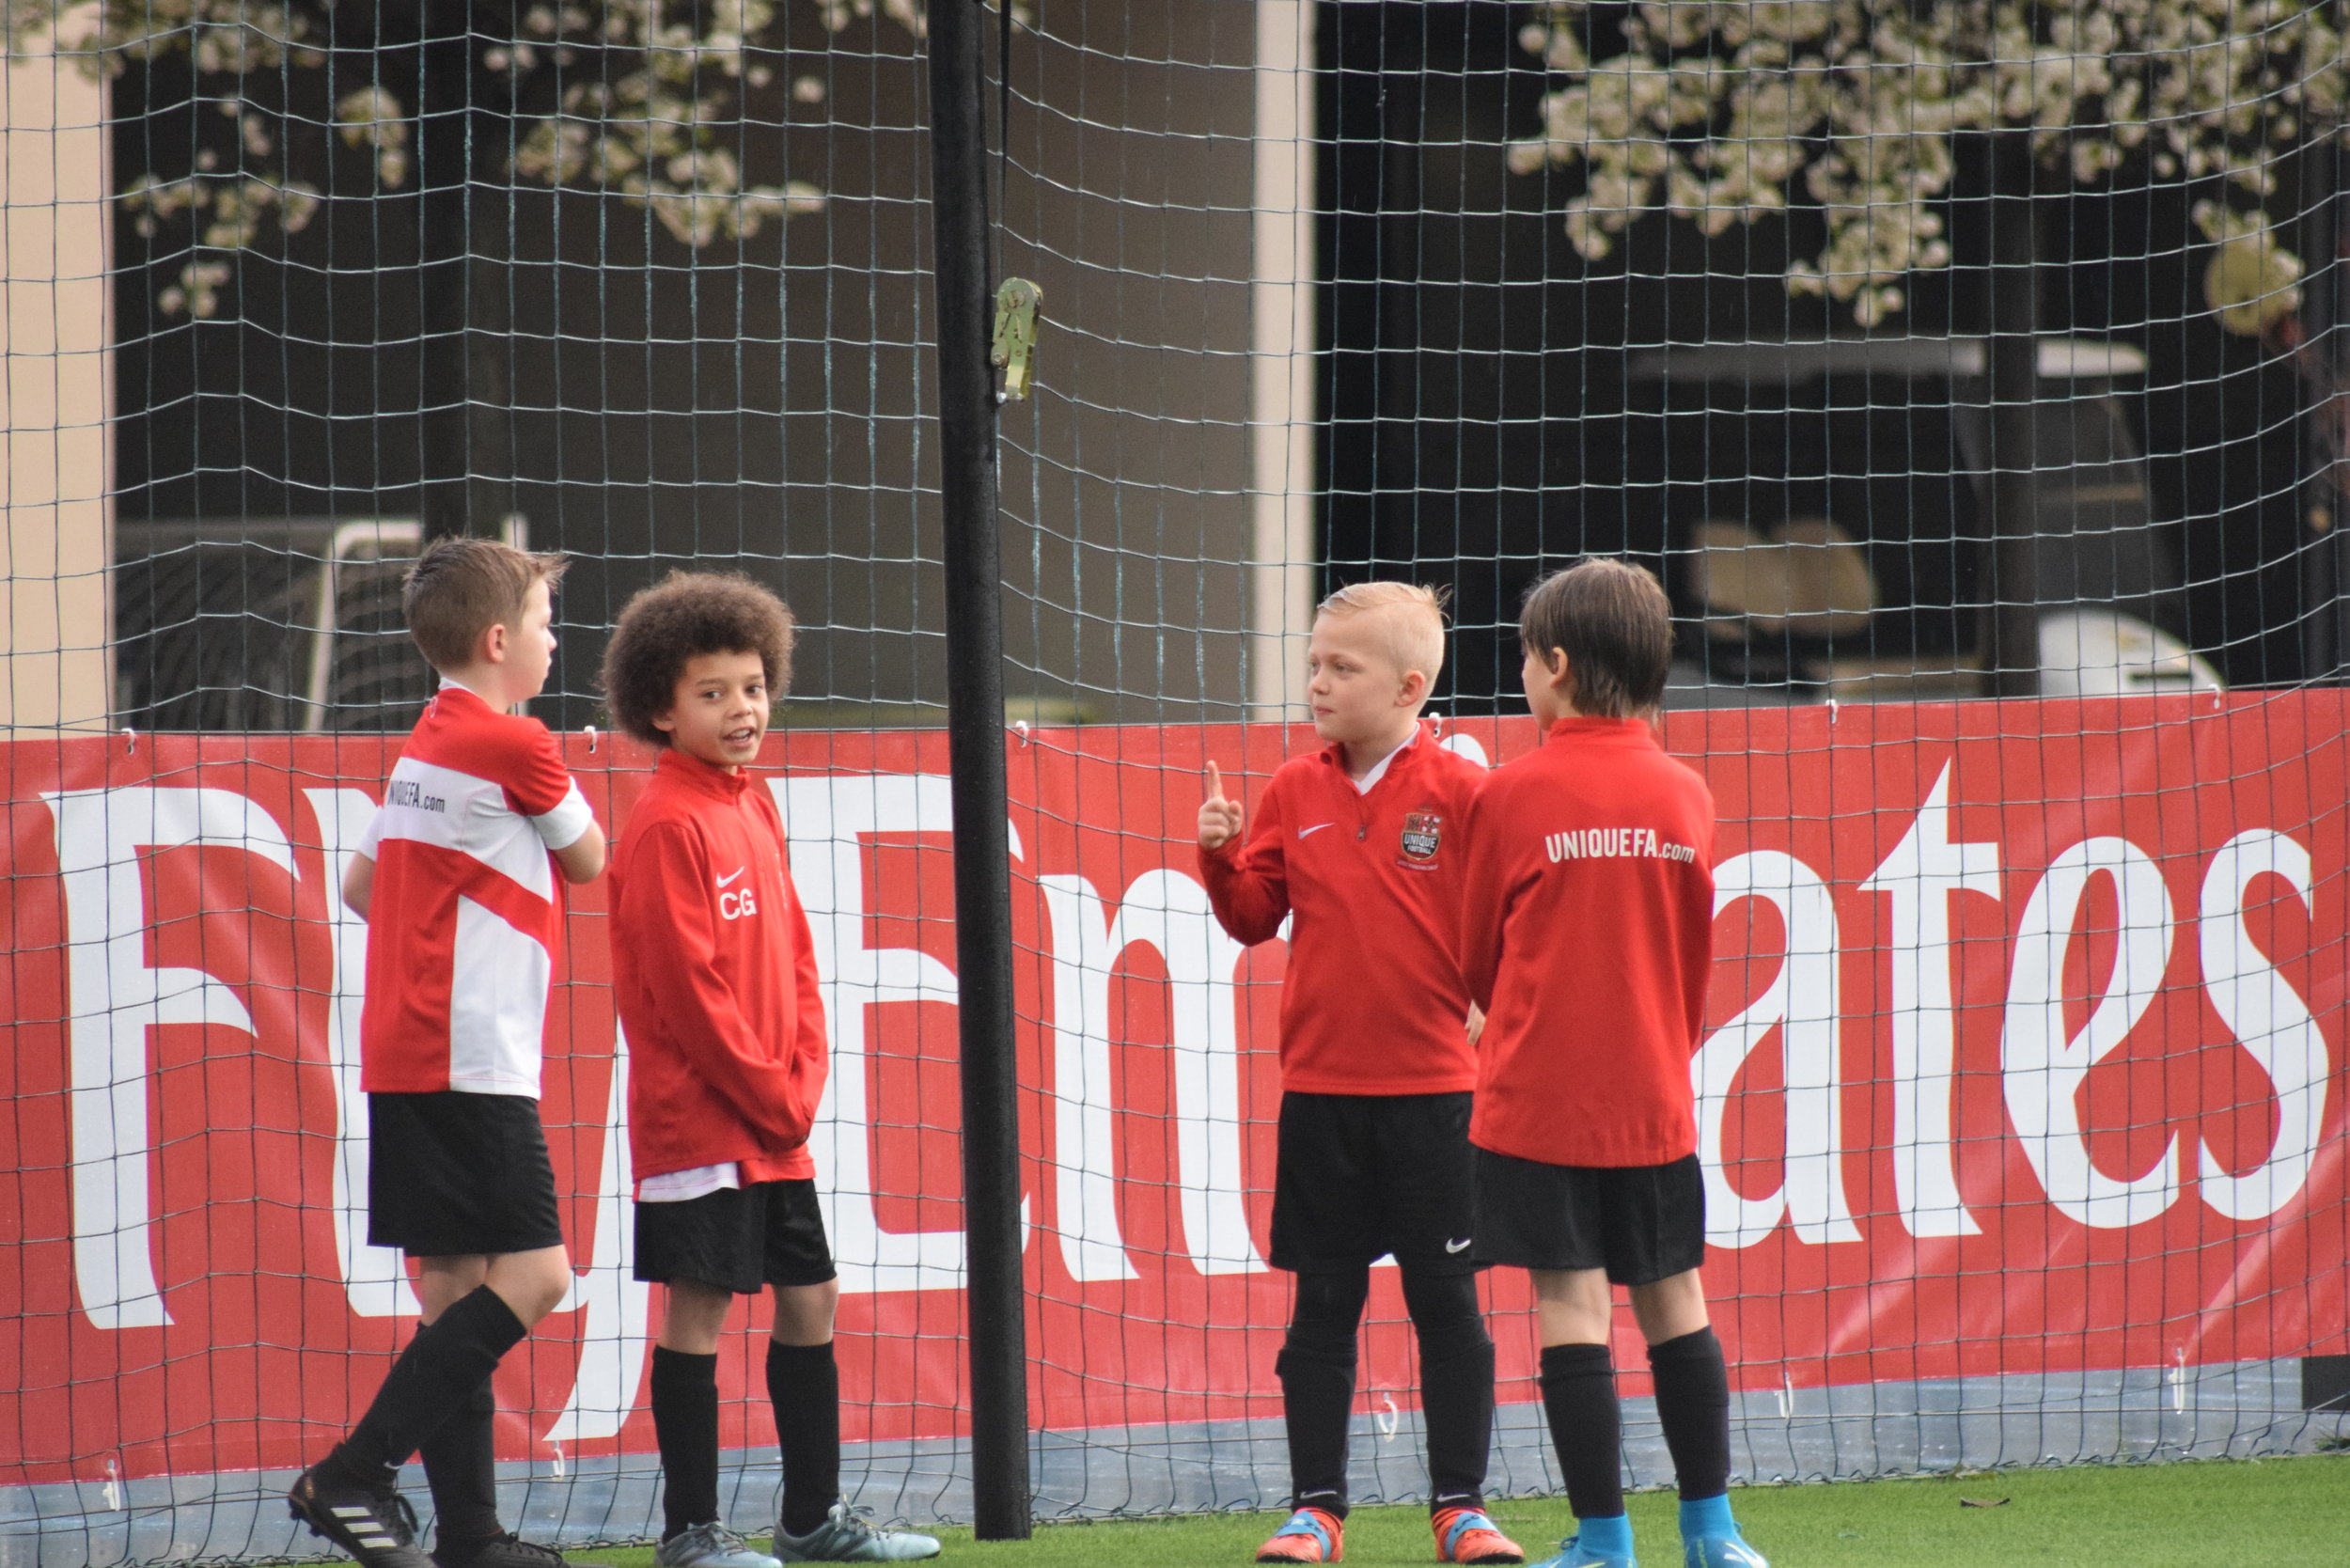 TECHNICAL PROGRAMME - The Technical Programme is for club players between the ages of 4-17 who want to focus purely on improving technique. Sessions are designed with the individual player needs in mind, providing our members with a solid foundation to build on. We cater for all Grassroots and Academy standard players.With fantastic facilities in Bromley, our popular Technical Centre Programme is the place the enrol if you wish to polish up technically.